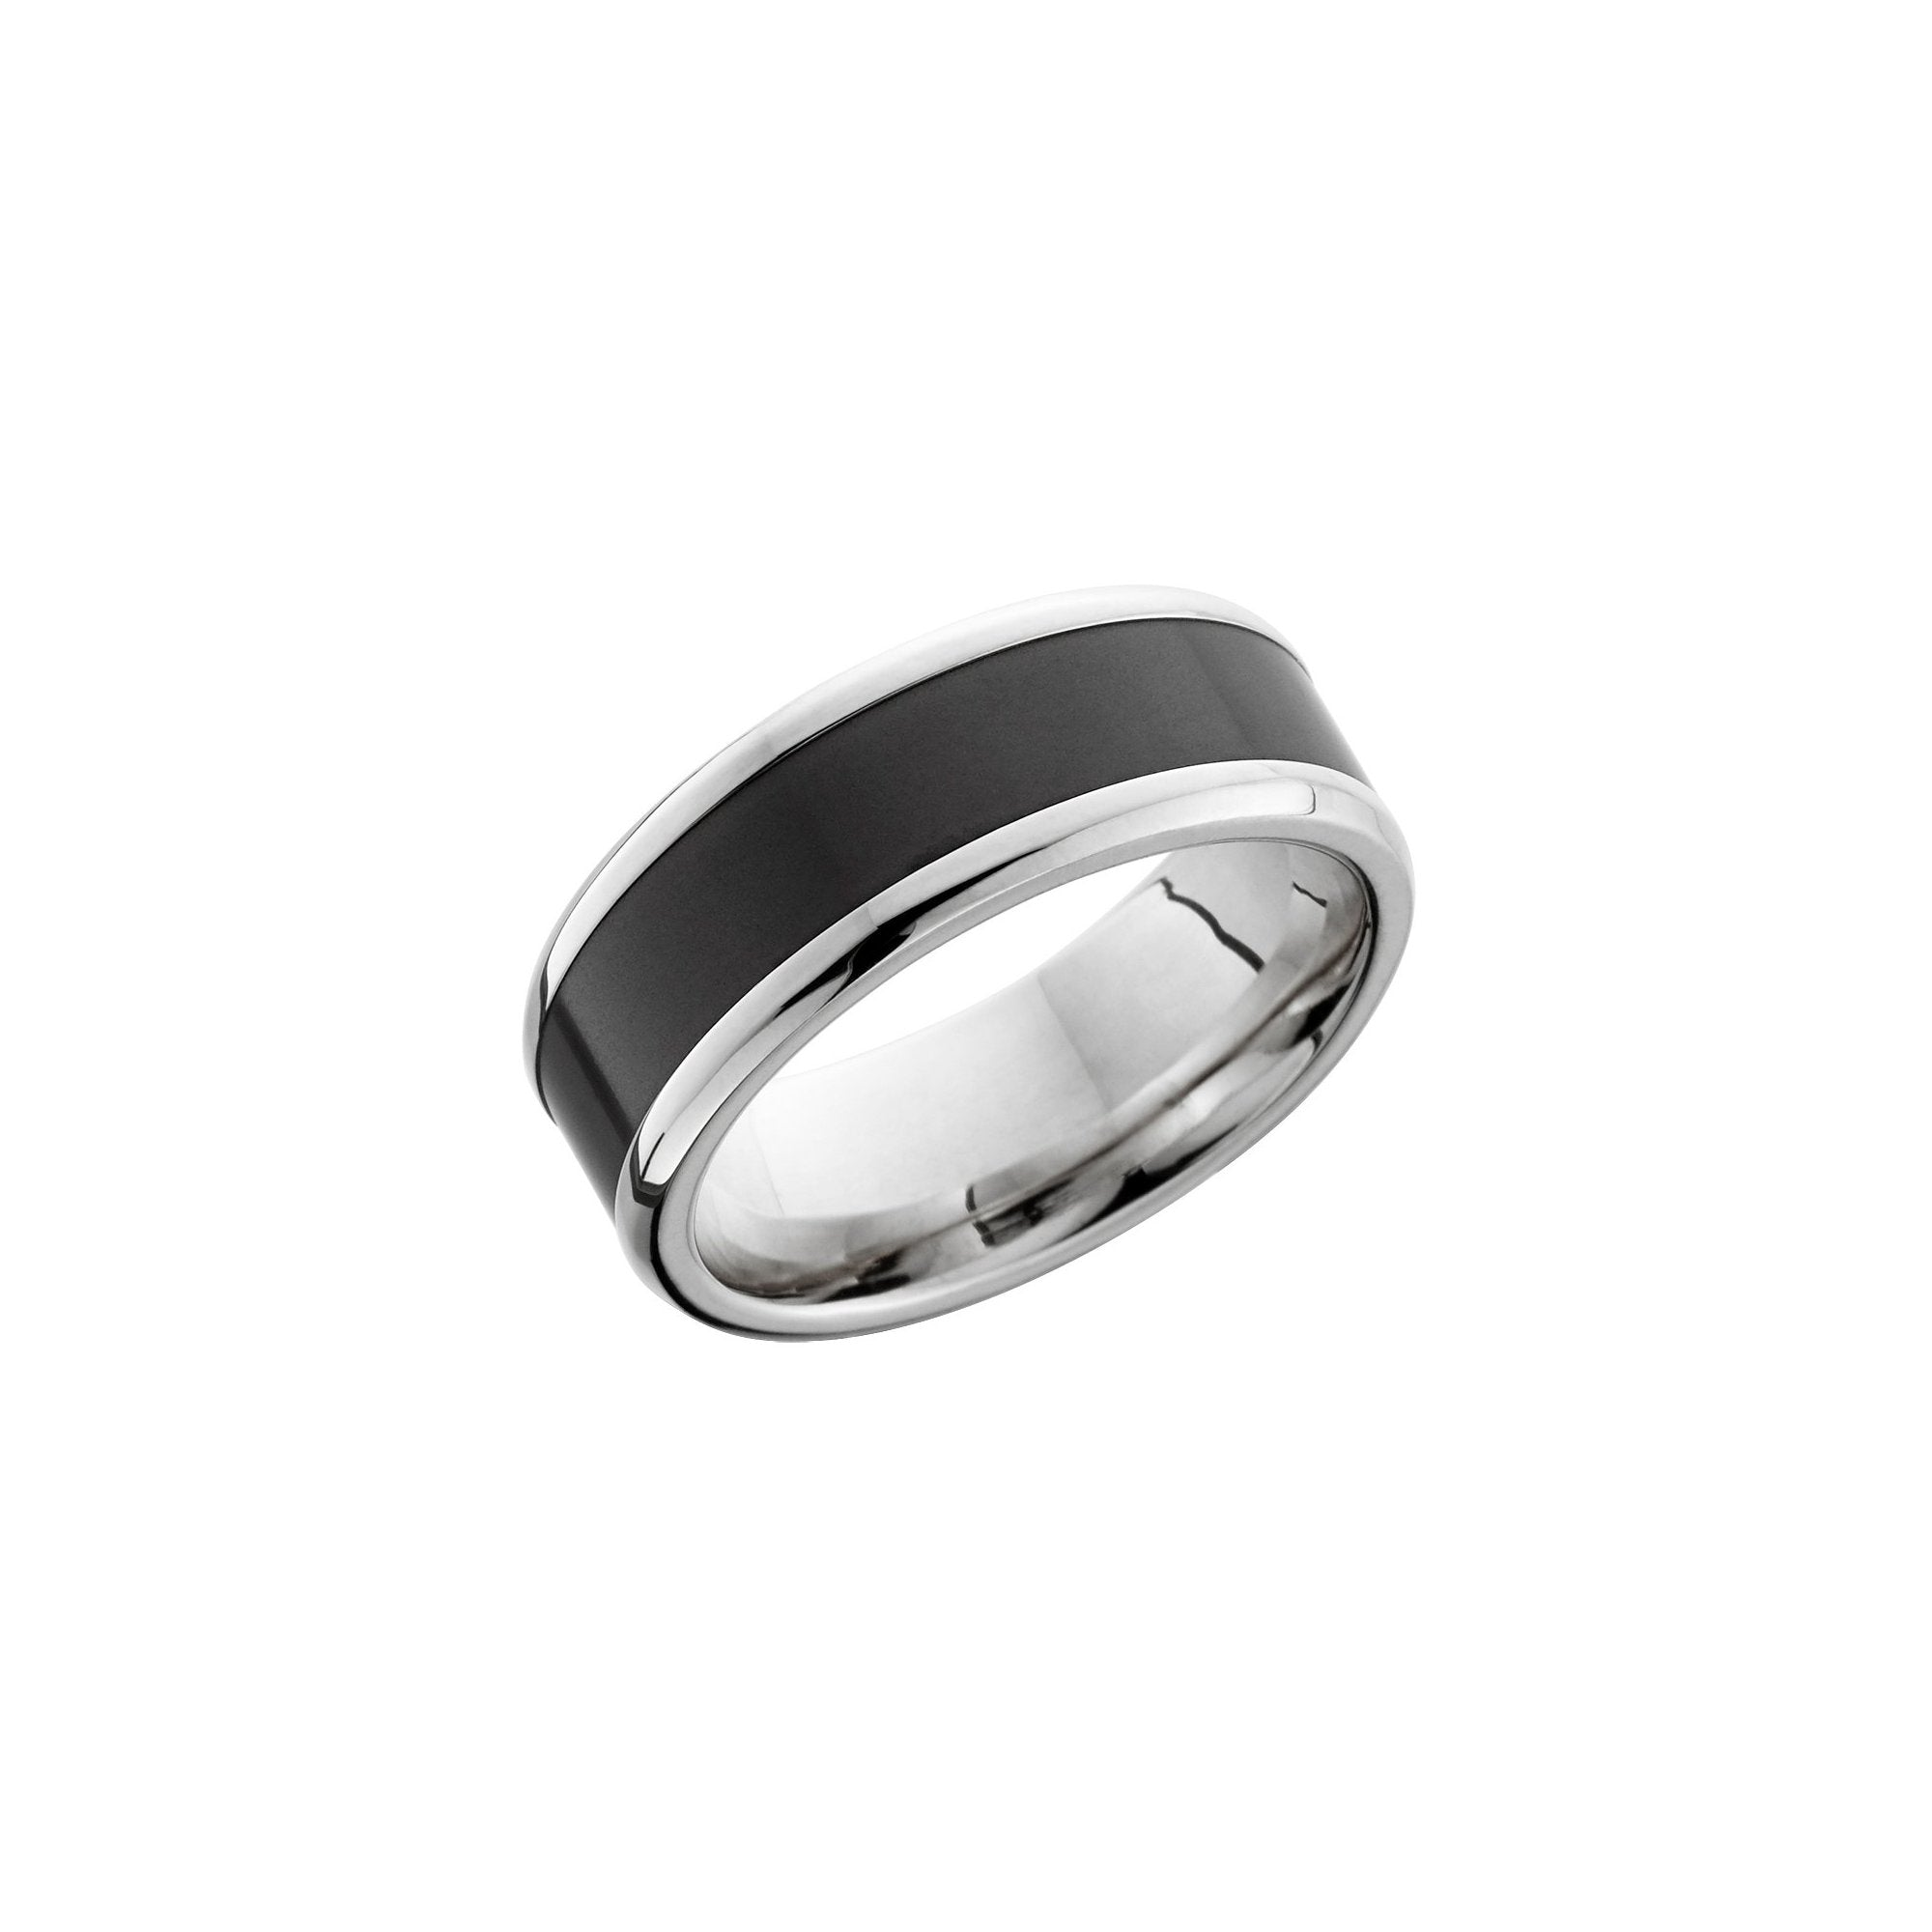 Ares 18k White Gold Band with Elysium Black Diamond Inlay - Talisman Collection Fine Jewelers